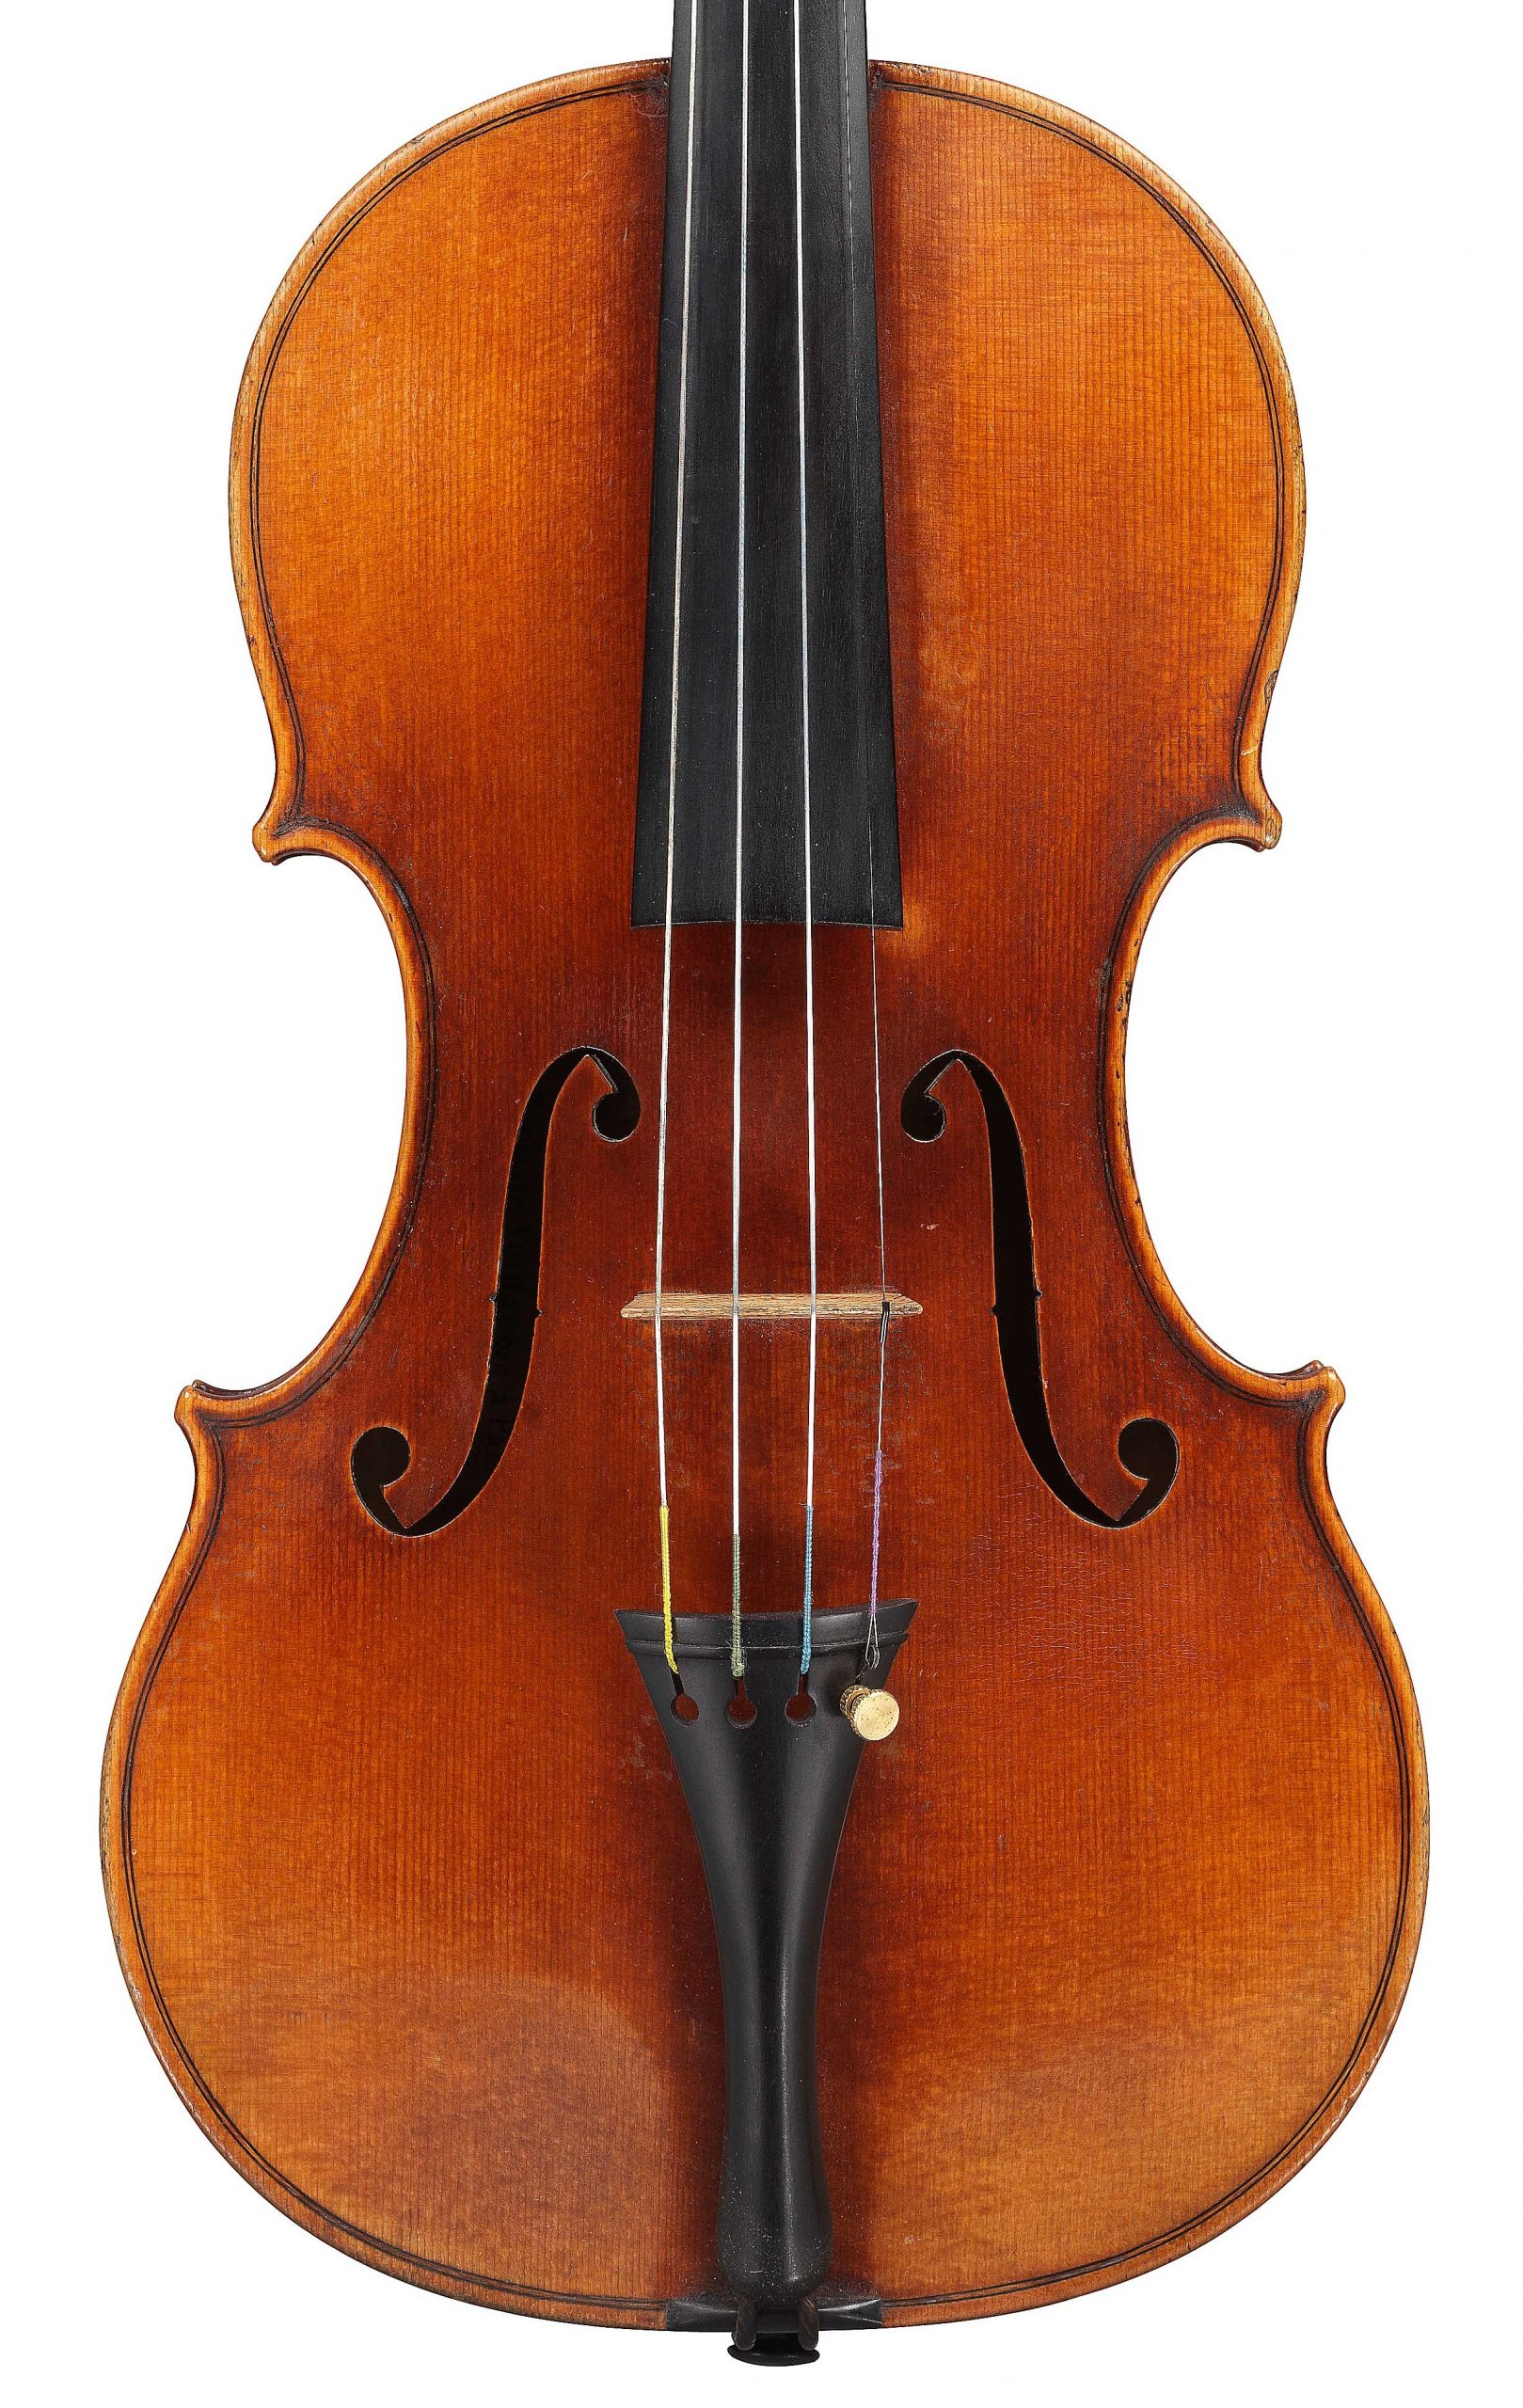 Front of violin by JB Vuillaume, dated 1859, ex-Karrman, exhibited by Ingles & Hayday at Sotheby's in 2012